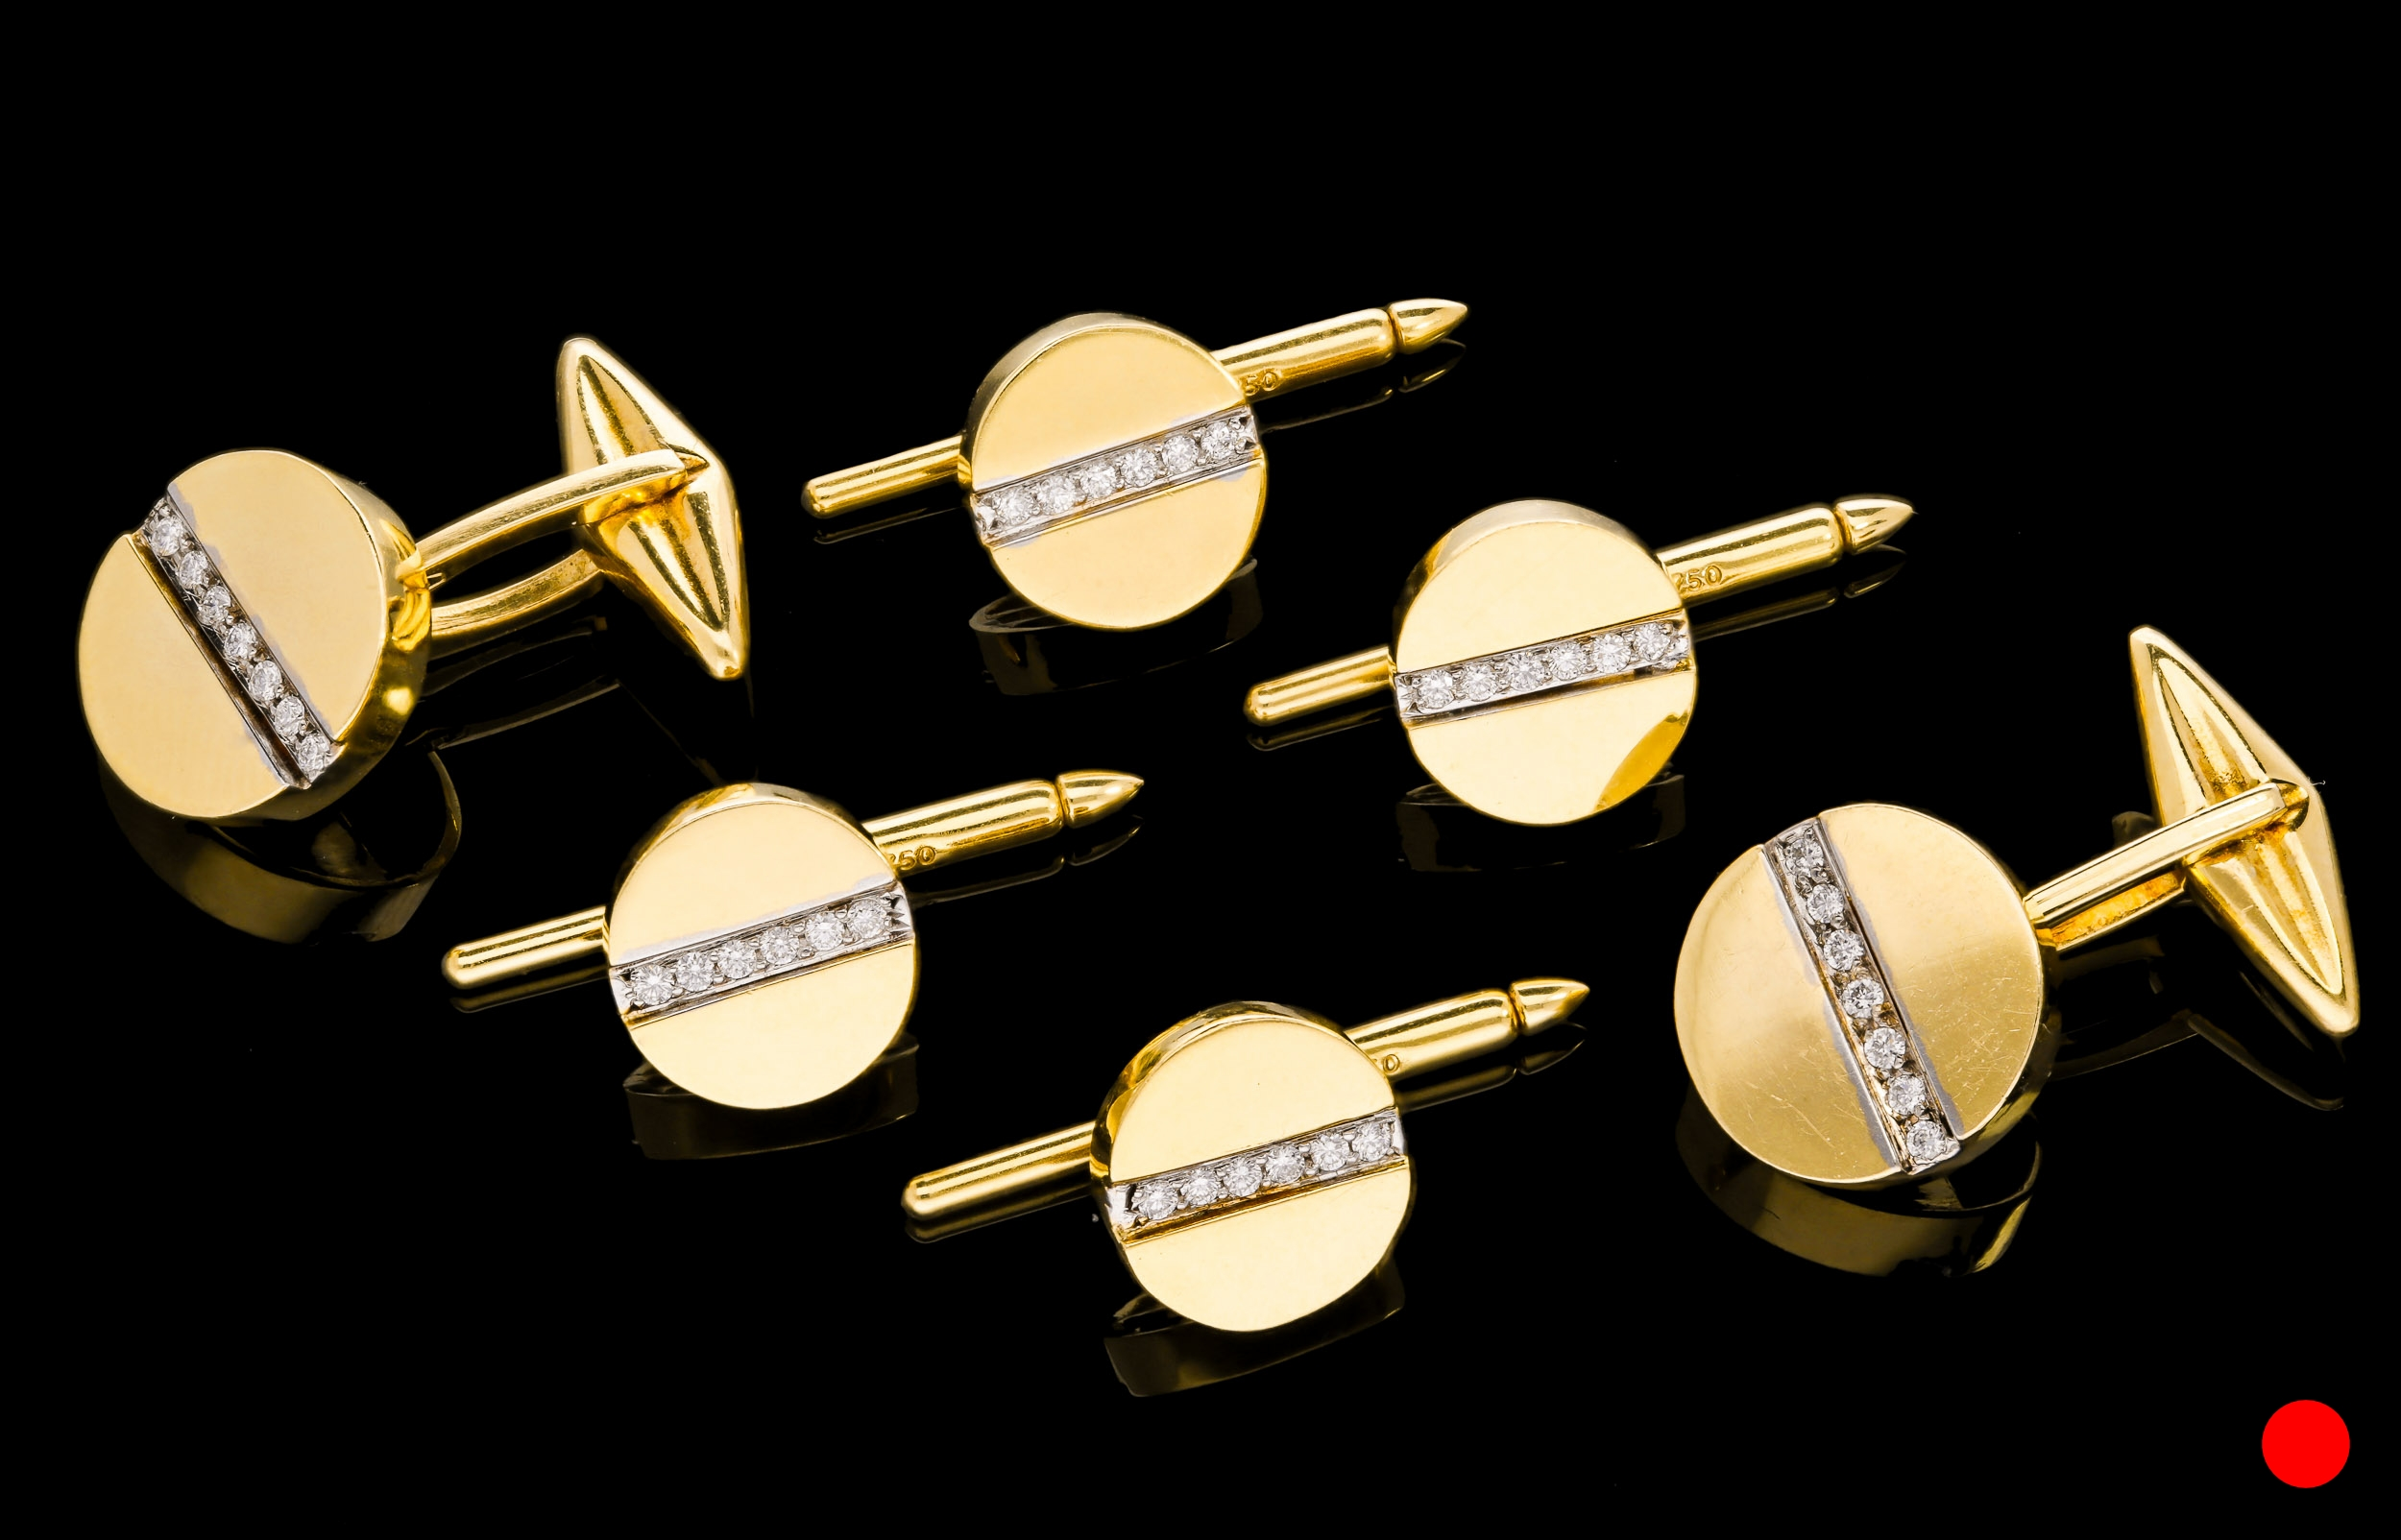 The cufflinks with hinged T-bar fittings |£8500